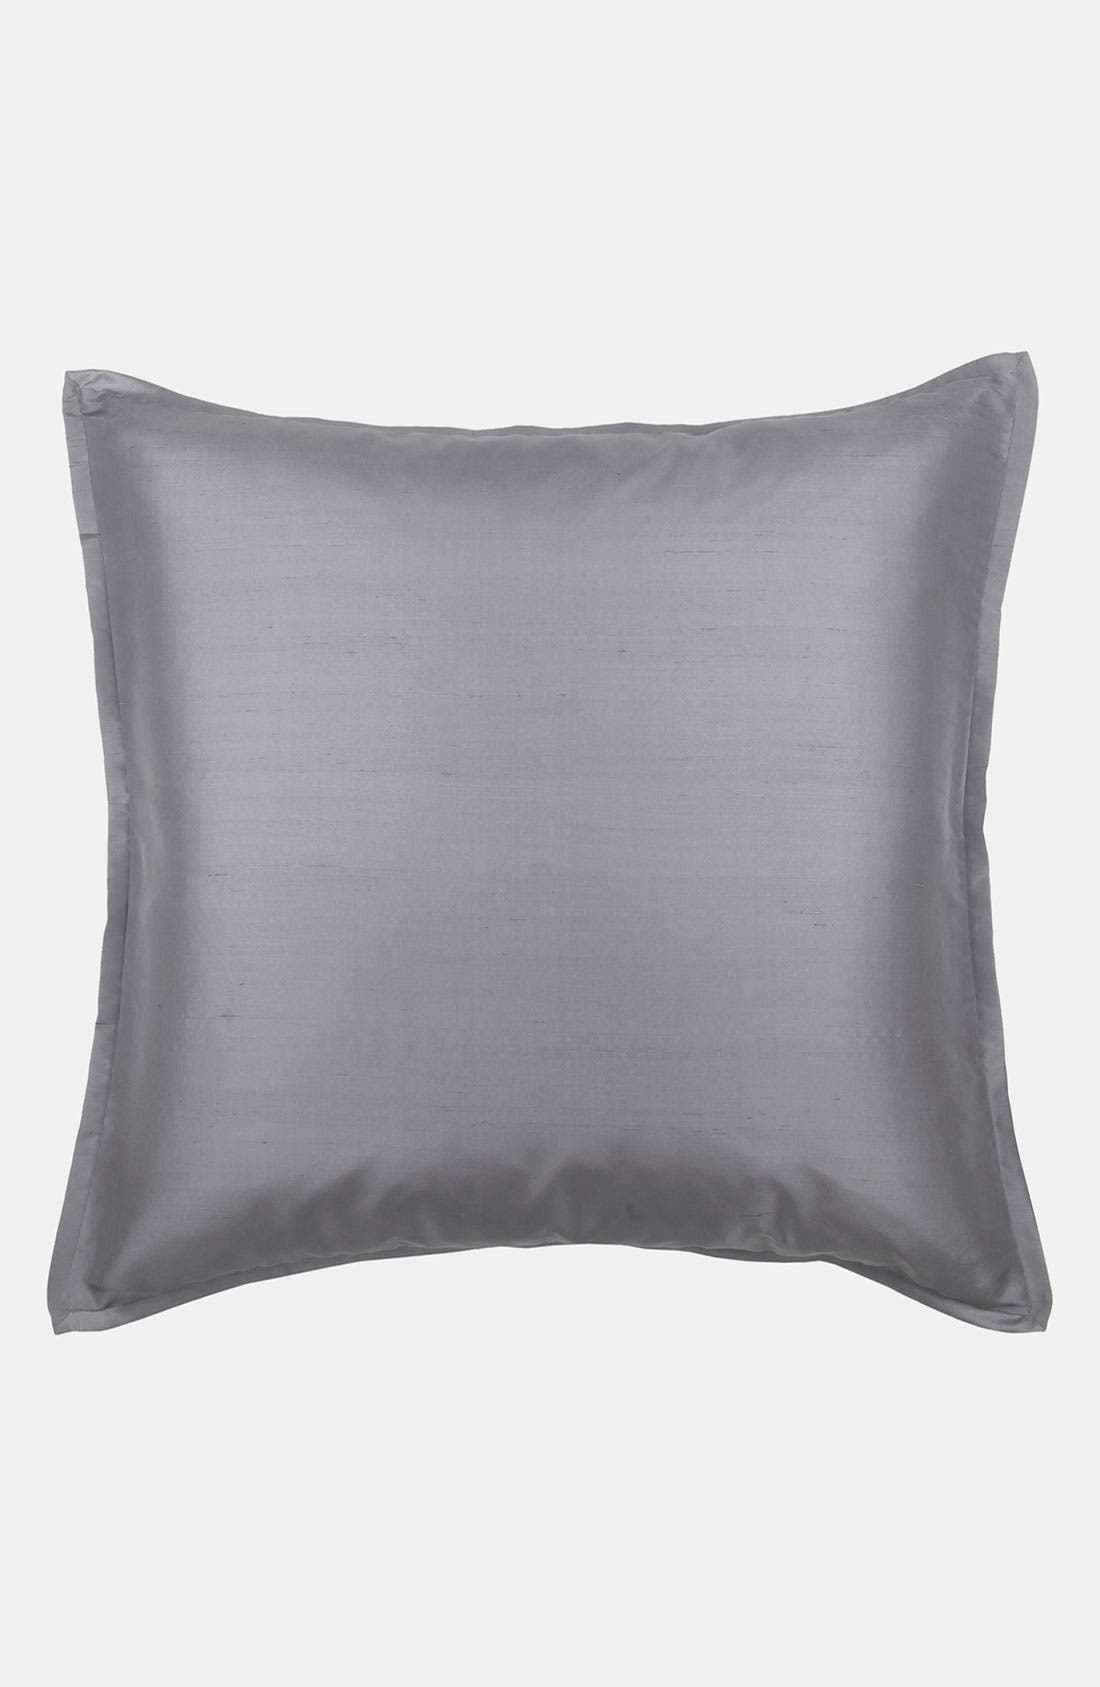 Alternate Image 1 Selected - Blissliving Home 'Lucca Graphite' Euro Pillow (Online Only)